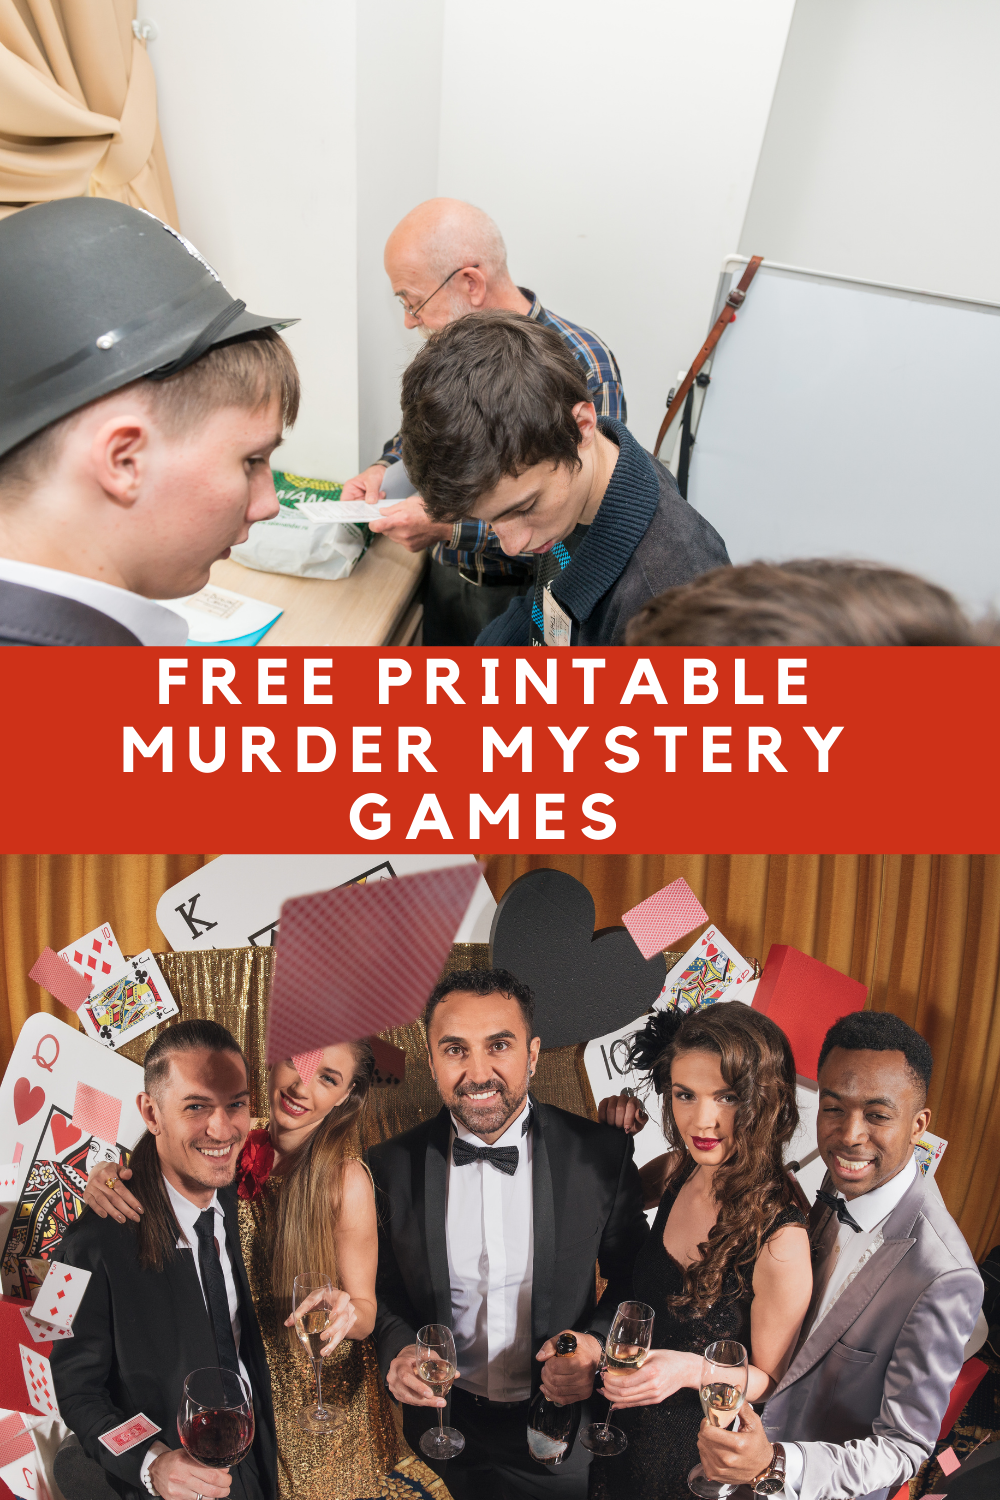 Free Printable Murder Mystery Games